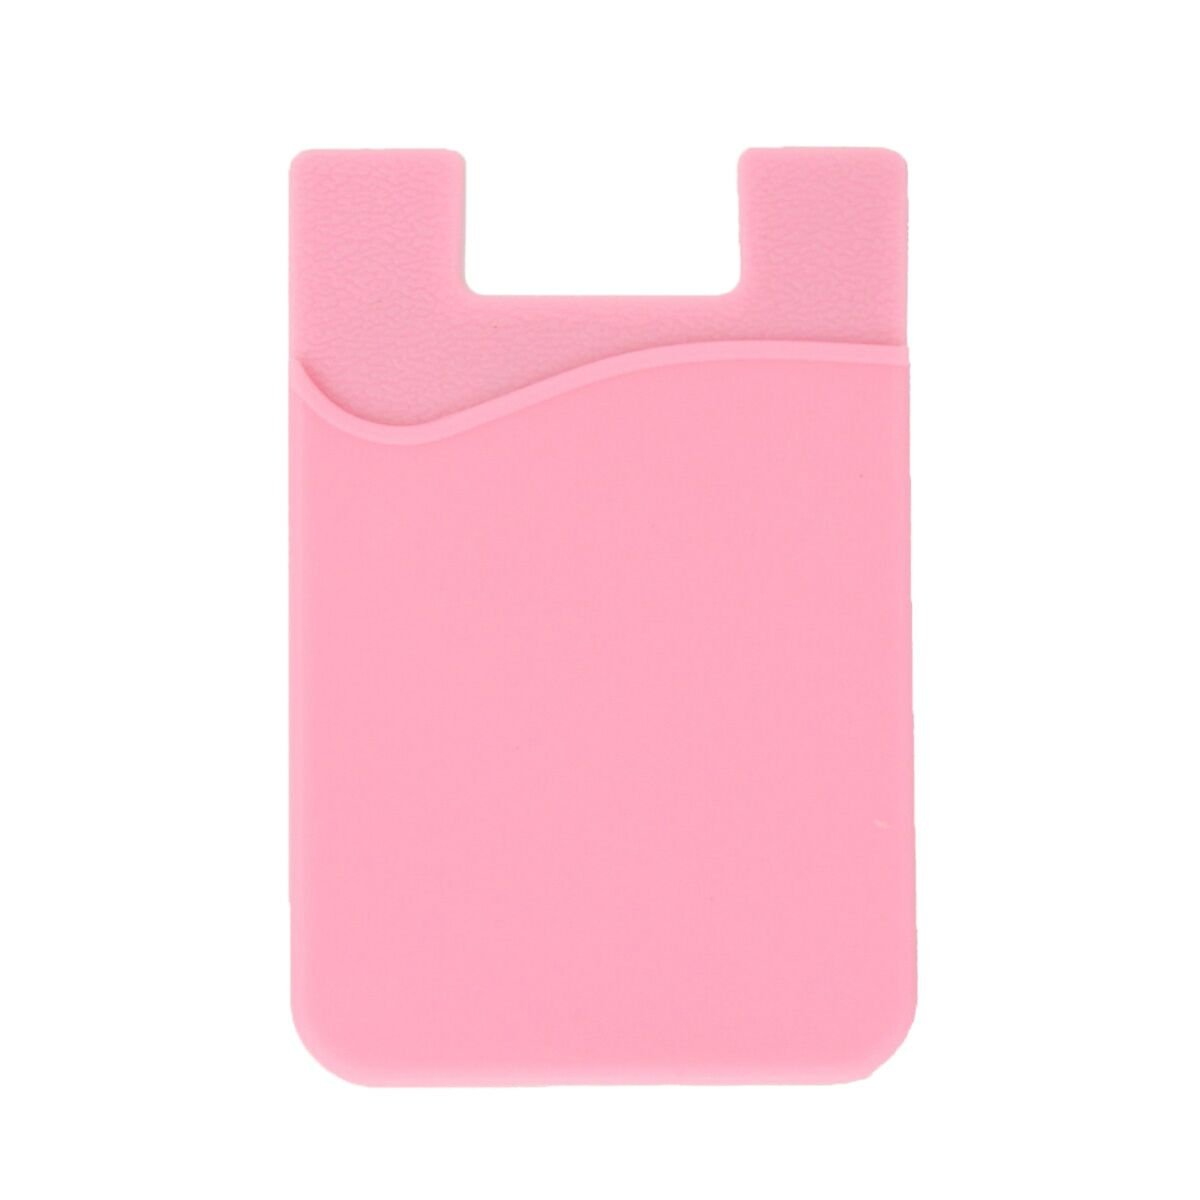 the latest 9757e a158b Phone Wallet, ARKTEK Stick On Sleeve Cell Phone Case Adhesive Silicone  Credit Card Holder(Pink)